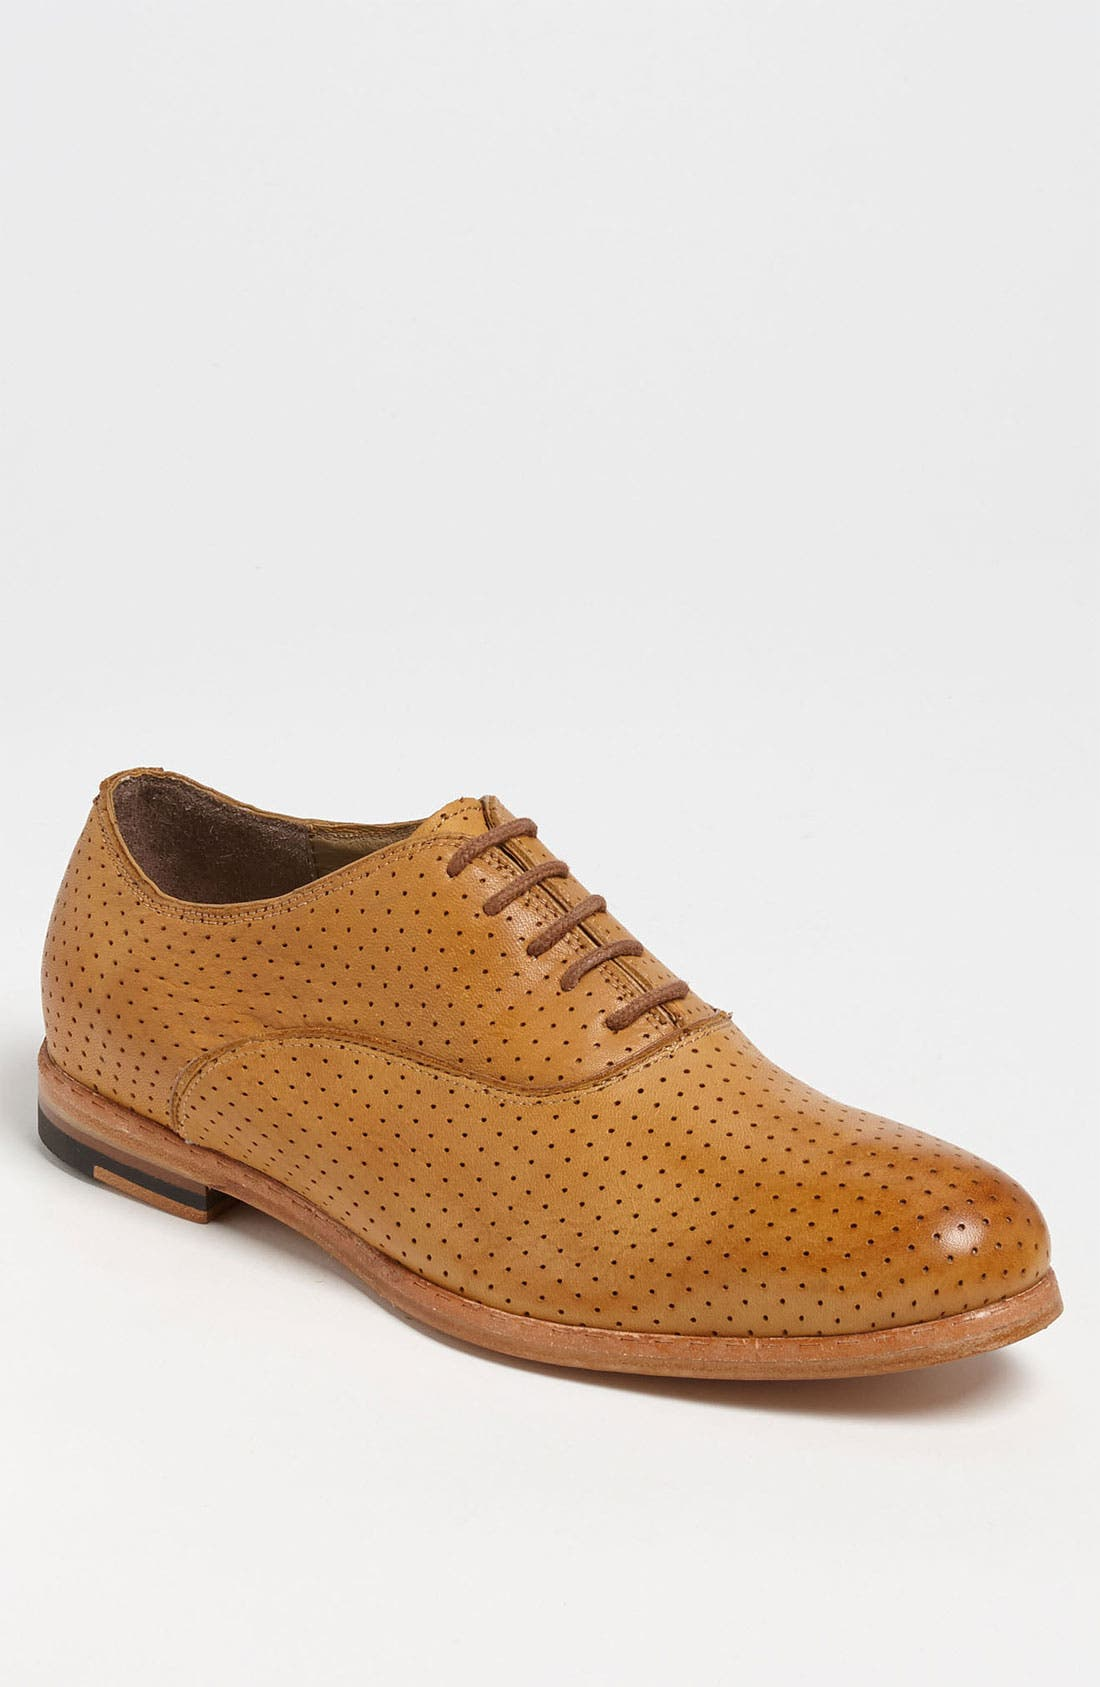 Main Image - J.D. Fisk 'Moore' Perforated Oxford